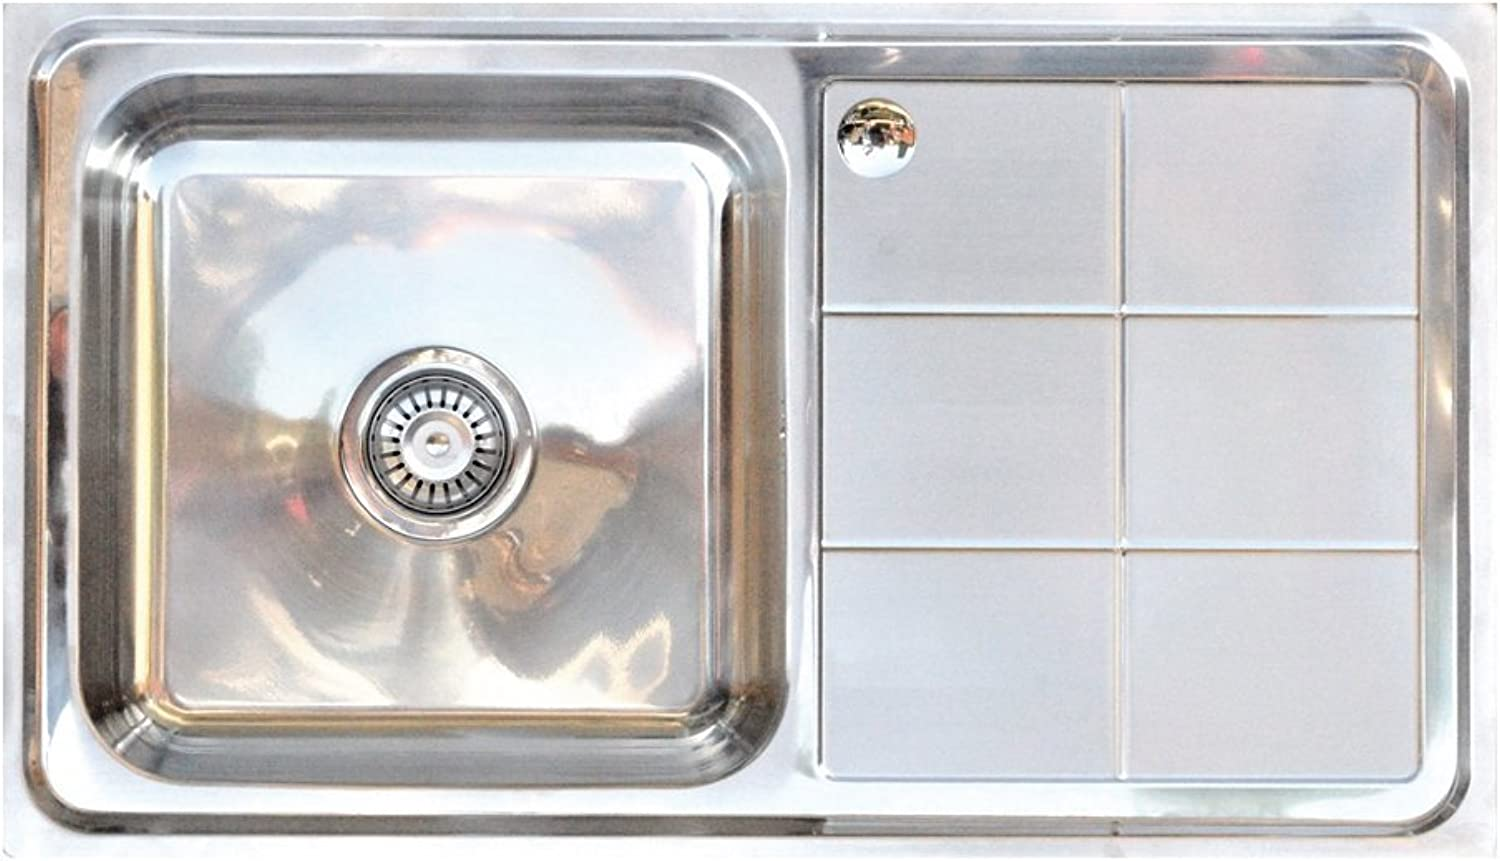 FITTINGSCO Stainless Steel Knightsbridge Single Bowl & Drainer Inset Kitchen Sink